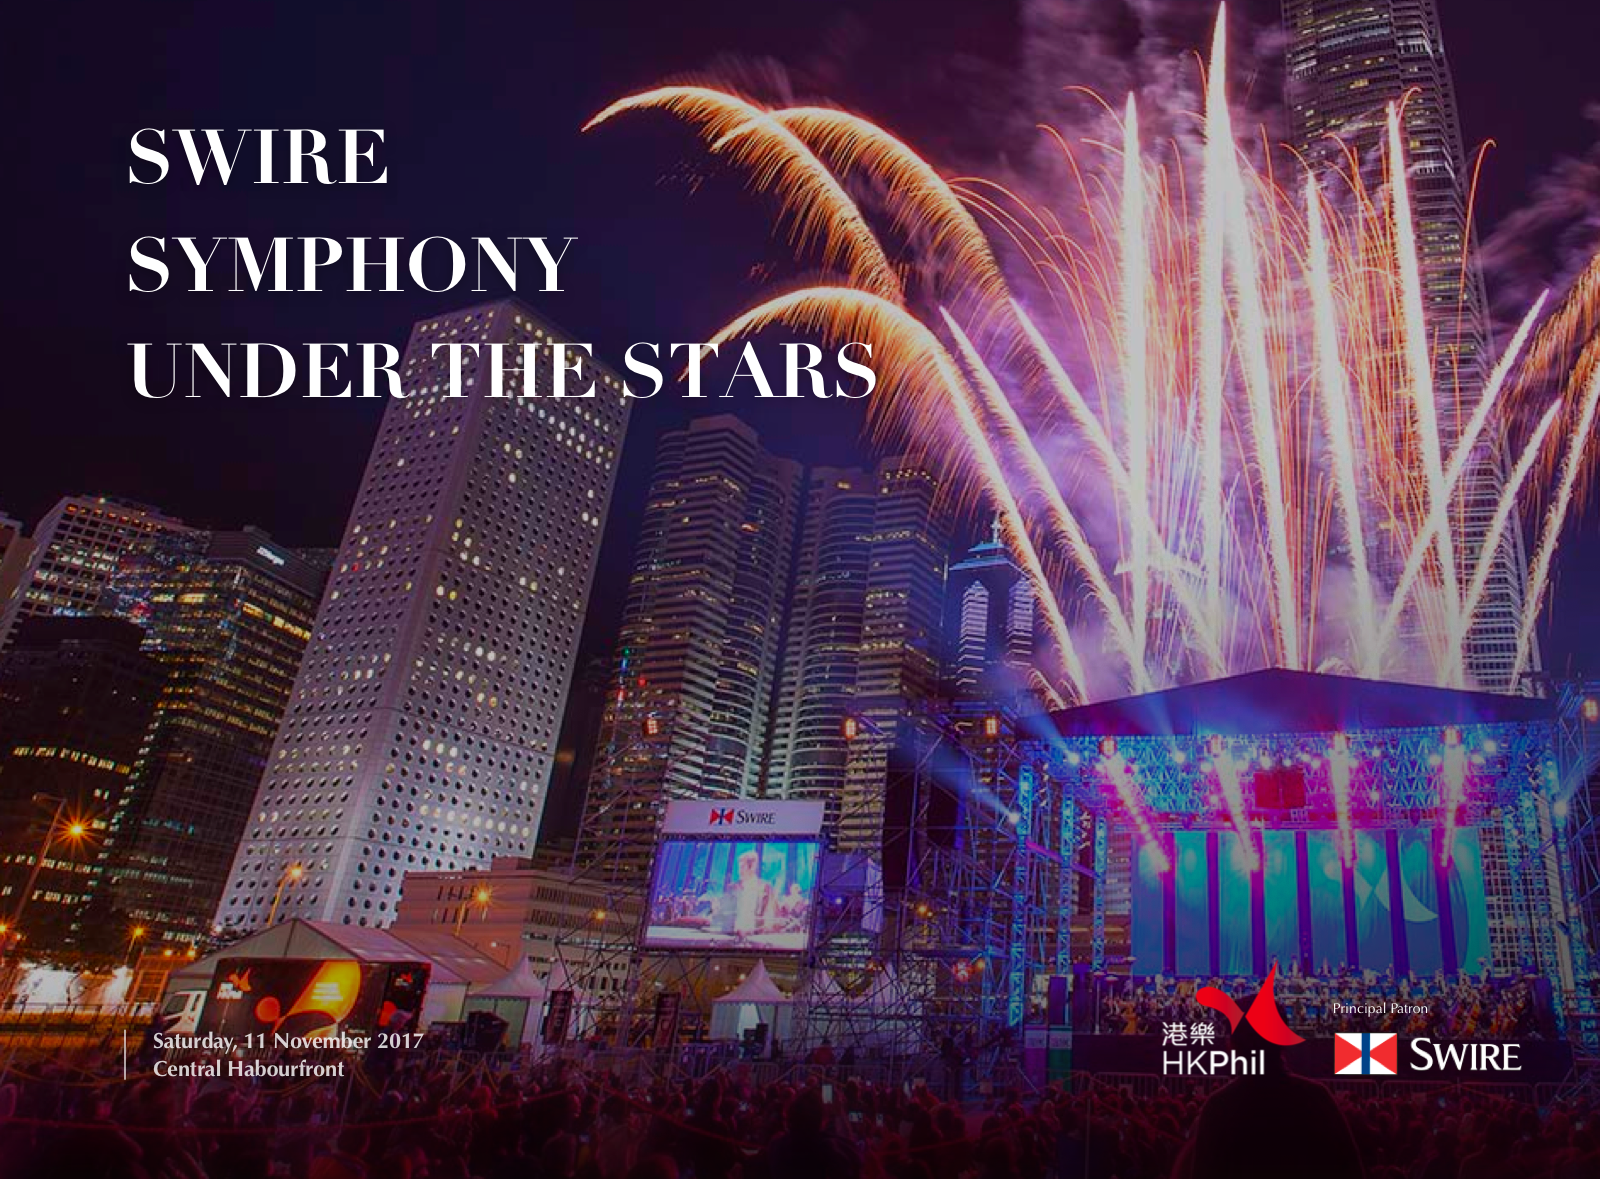 Swire Symphony Under The Stars